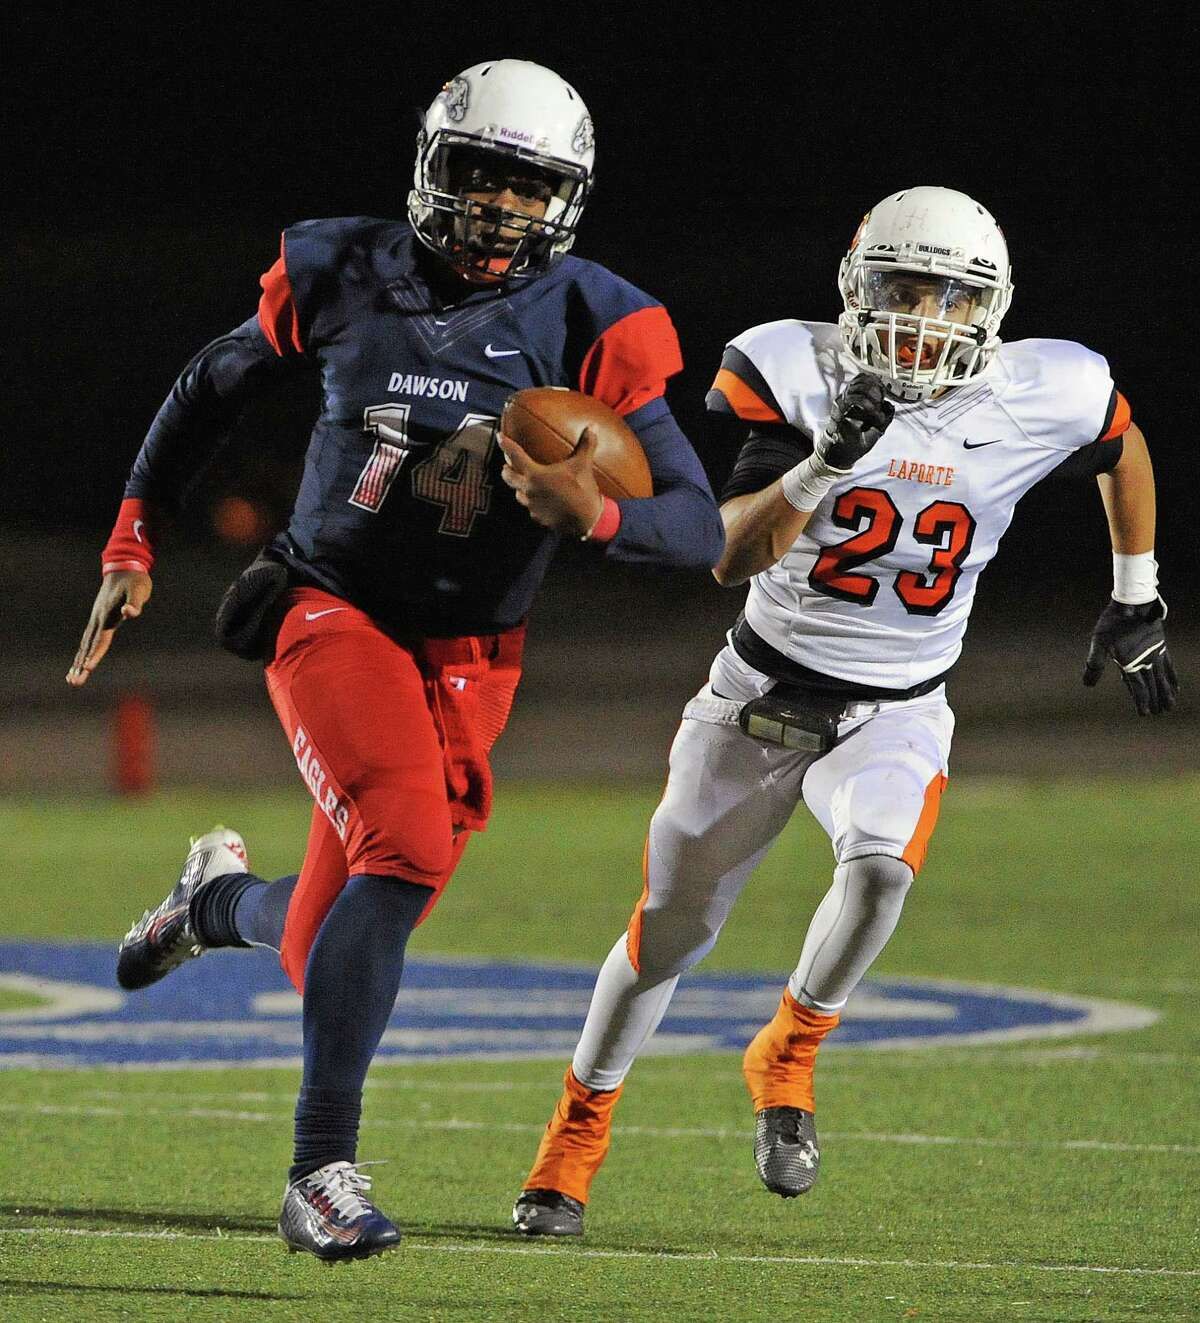 Dawson quarterback Vance Galloway, left, scampers past La Porte defensive back Lane Pfieffer during the second half of a high school football game, Friday, November 14, 2014, at Galena Park ISD Stadium in Houston. (Photo: Eric Christian Smith/For the Chronicle)